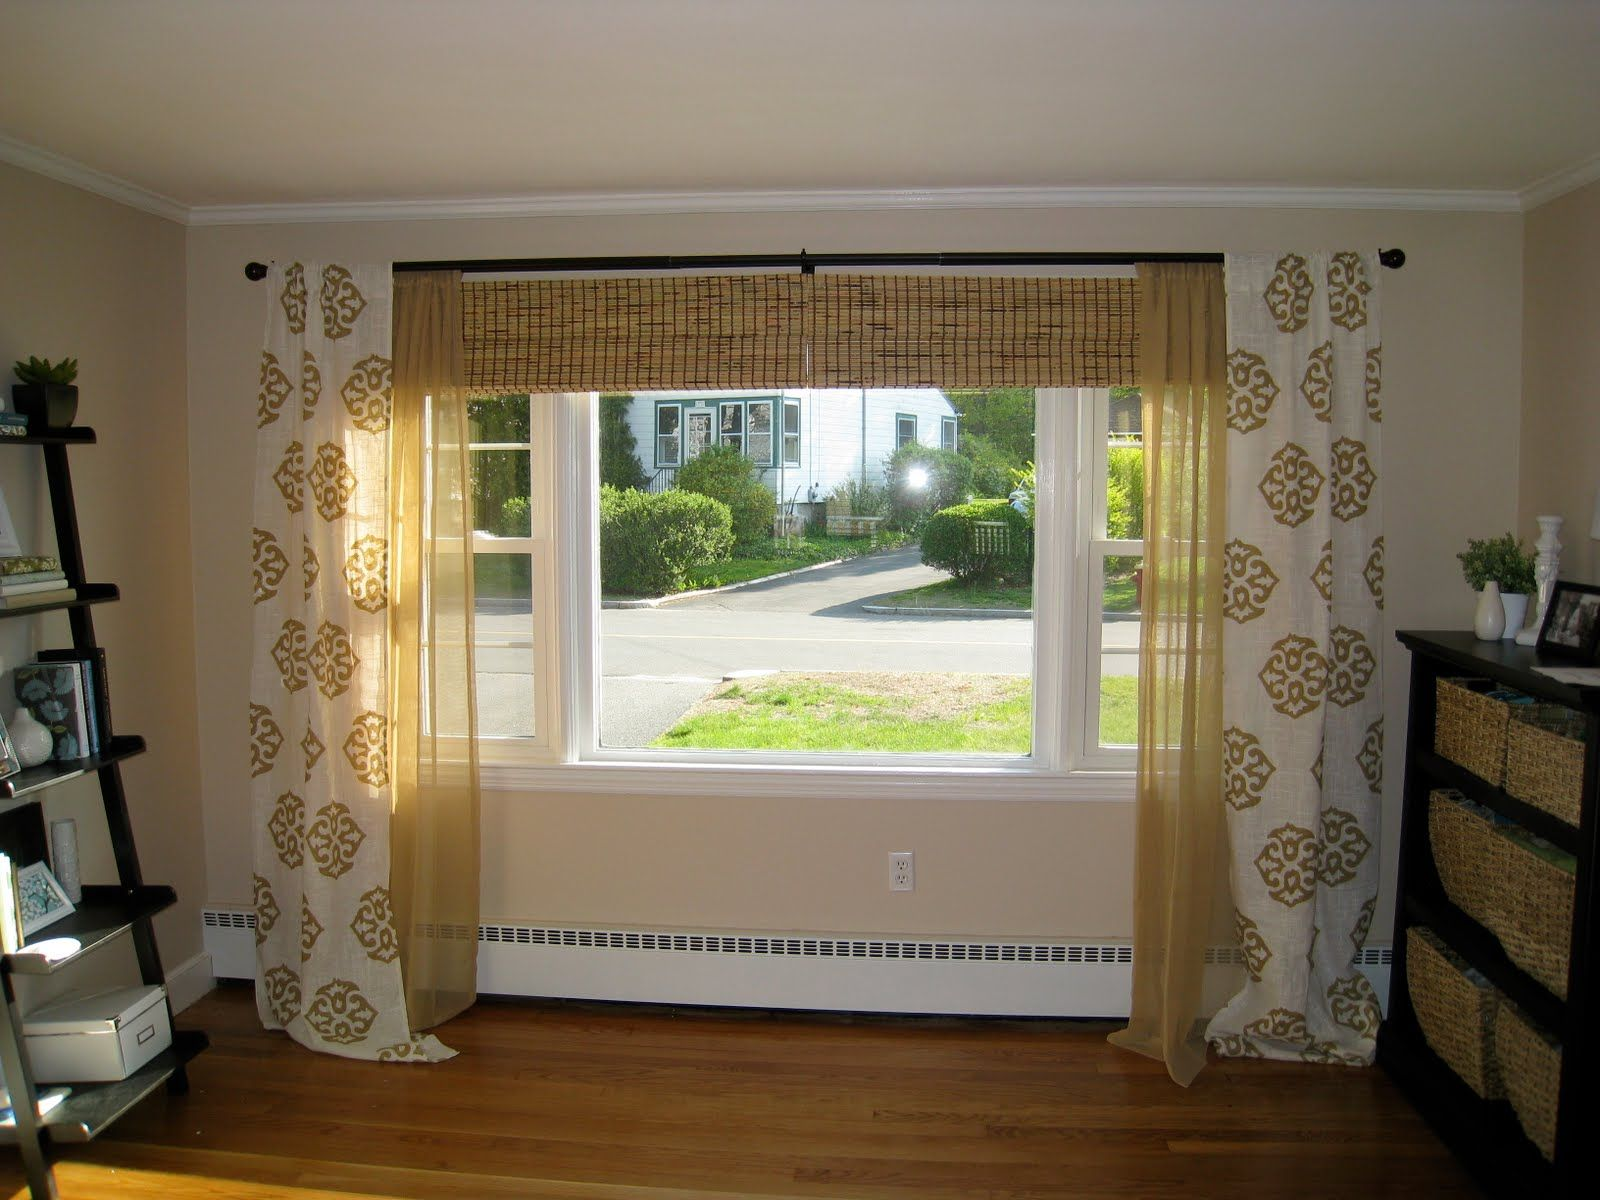 Window treatments for box bay windows - Window Ideas For Living Room Curtains Round 3